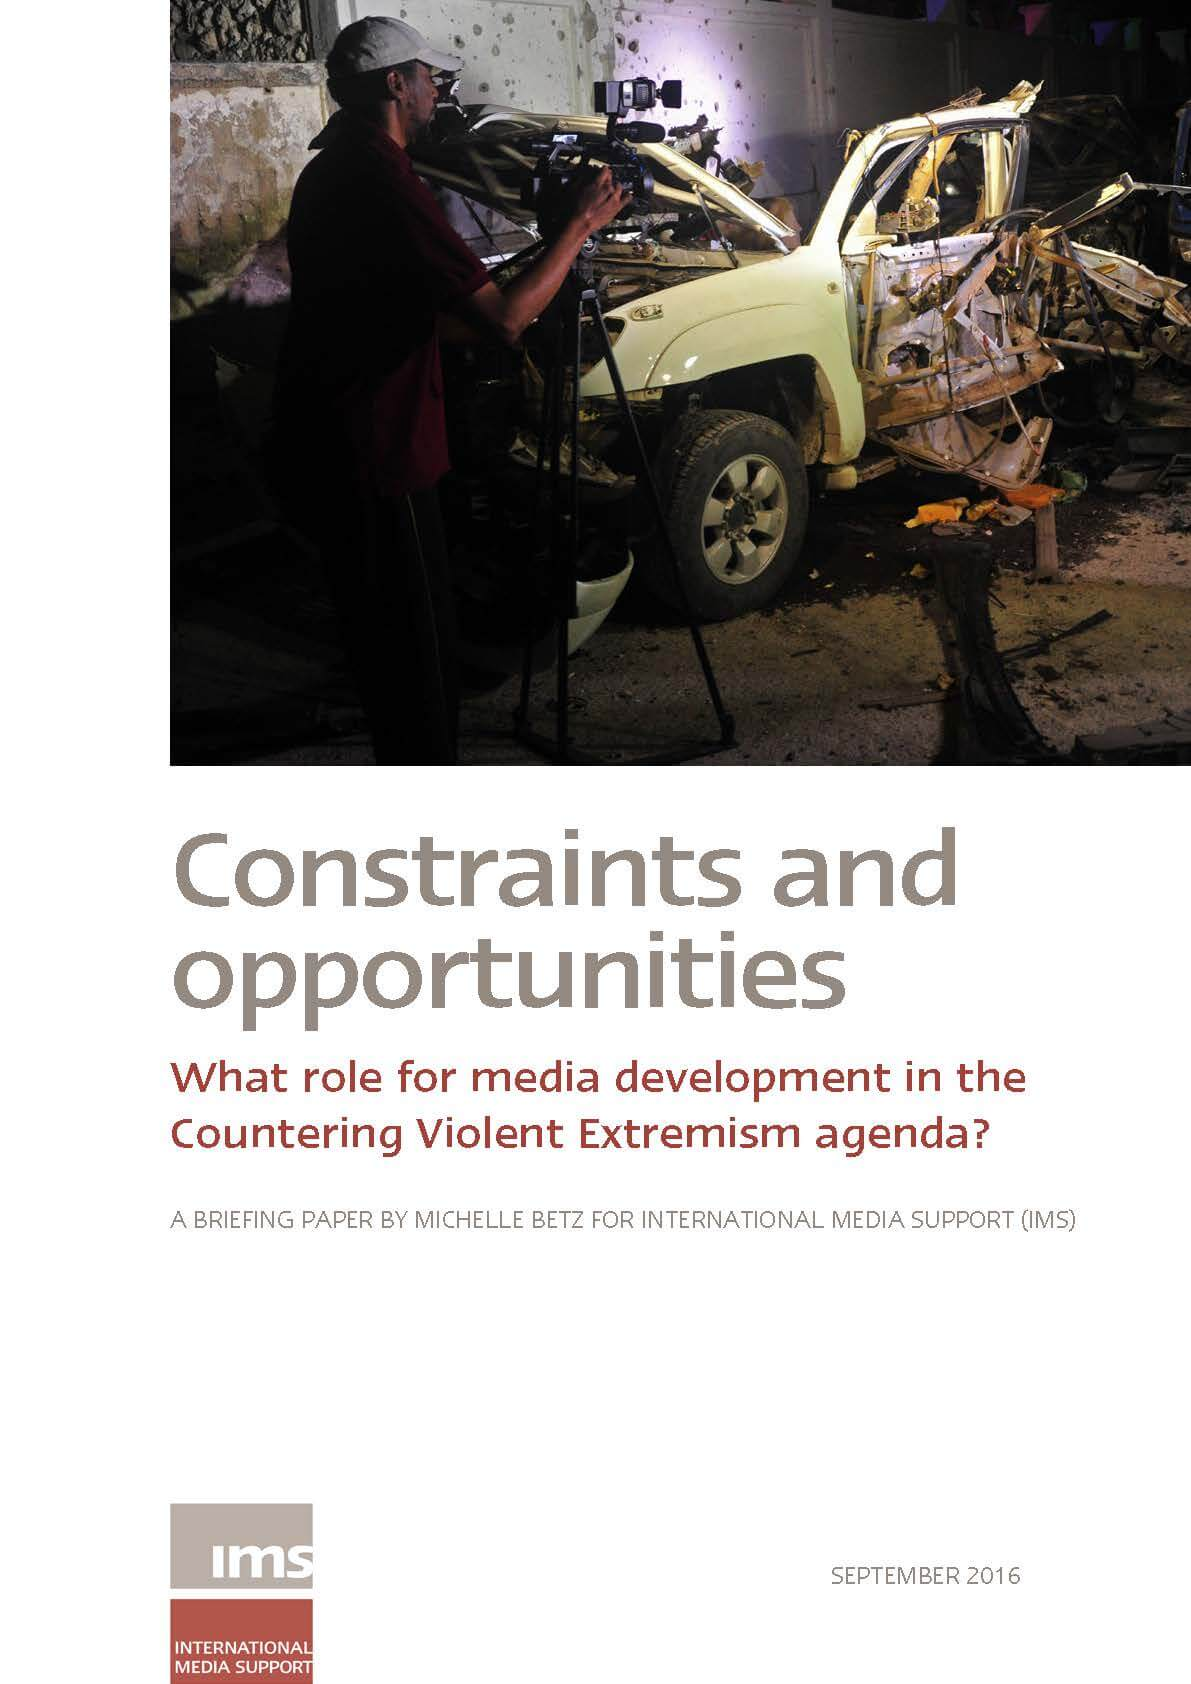 Constraints and opportunities - what role for media development in countering violent extremism